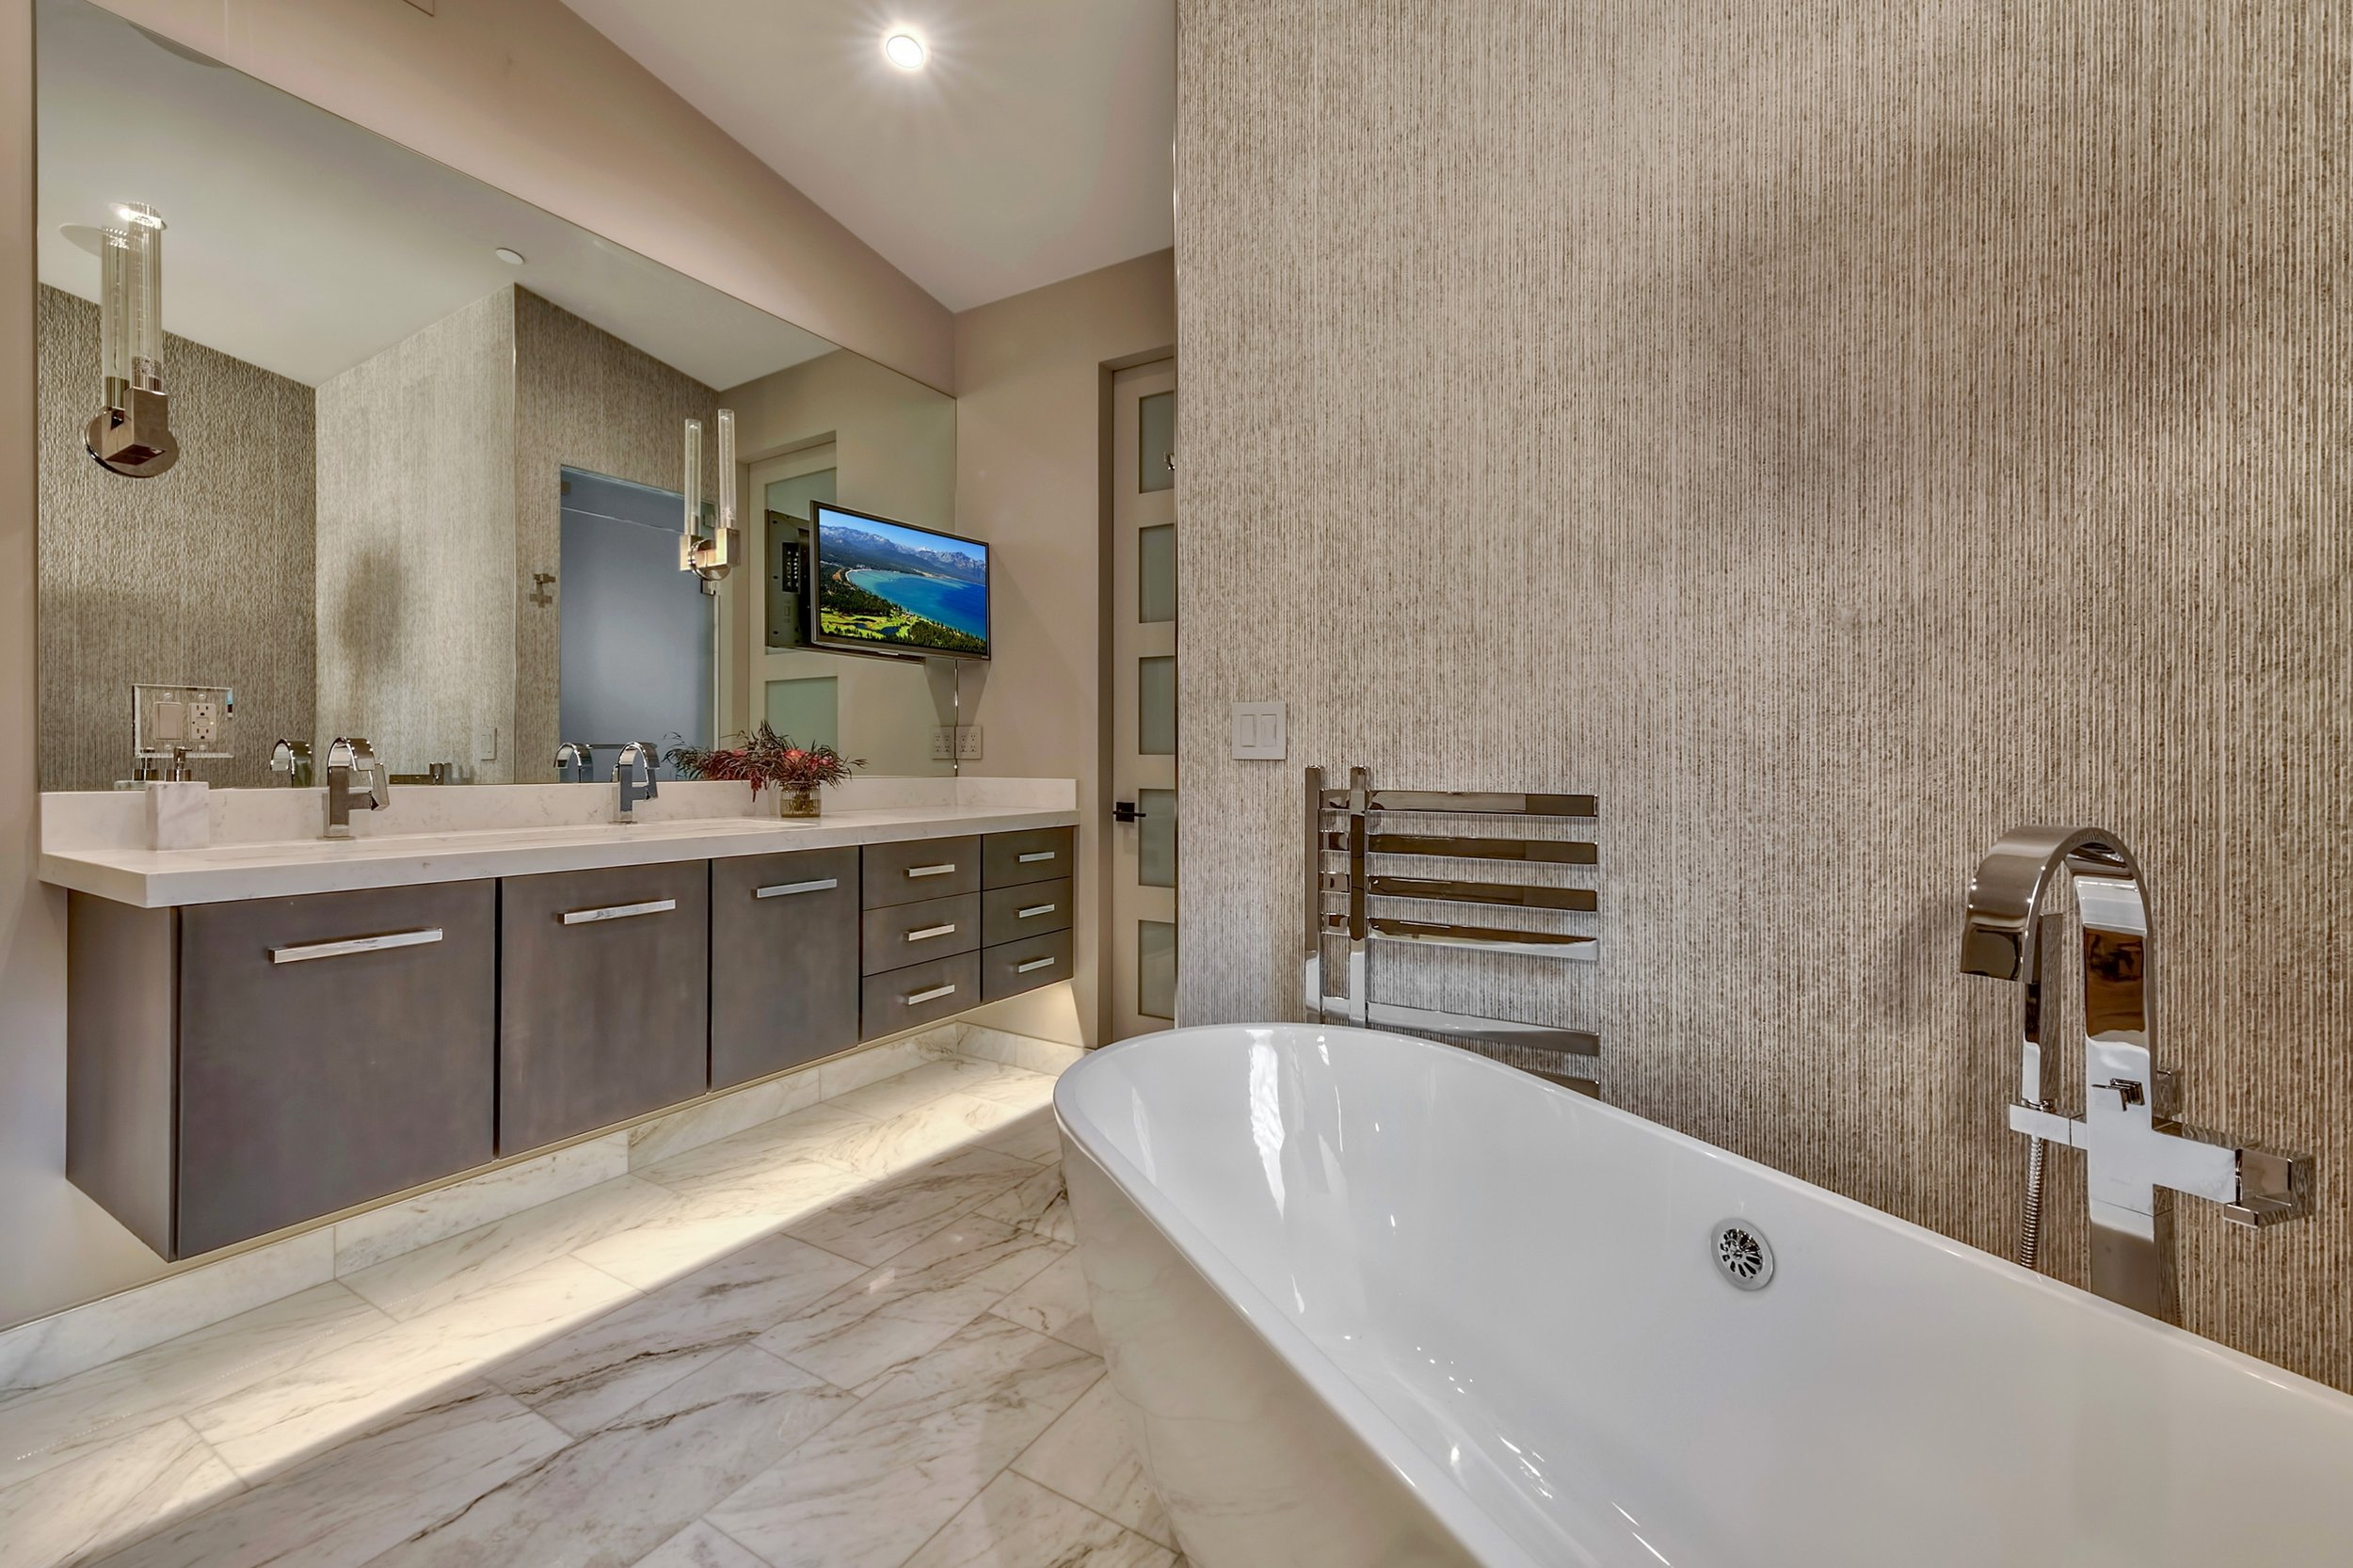 15 Lakeside Cove master bath 1.jpg